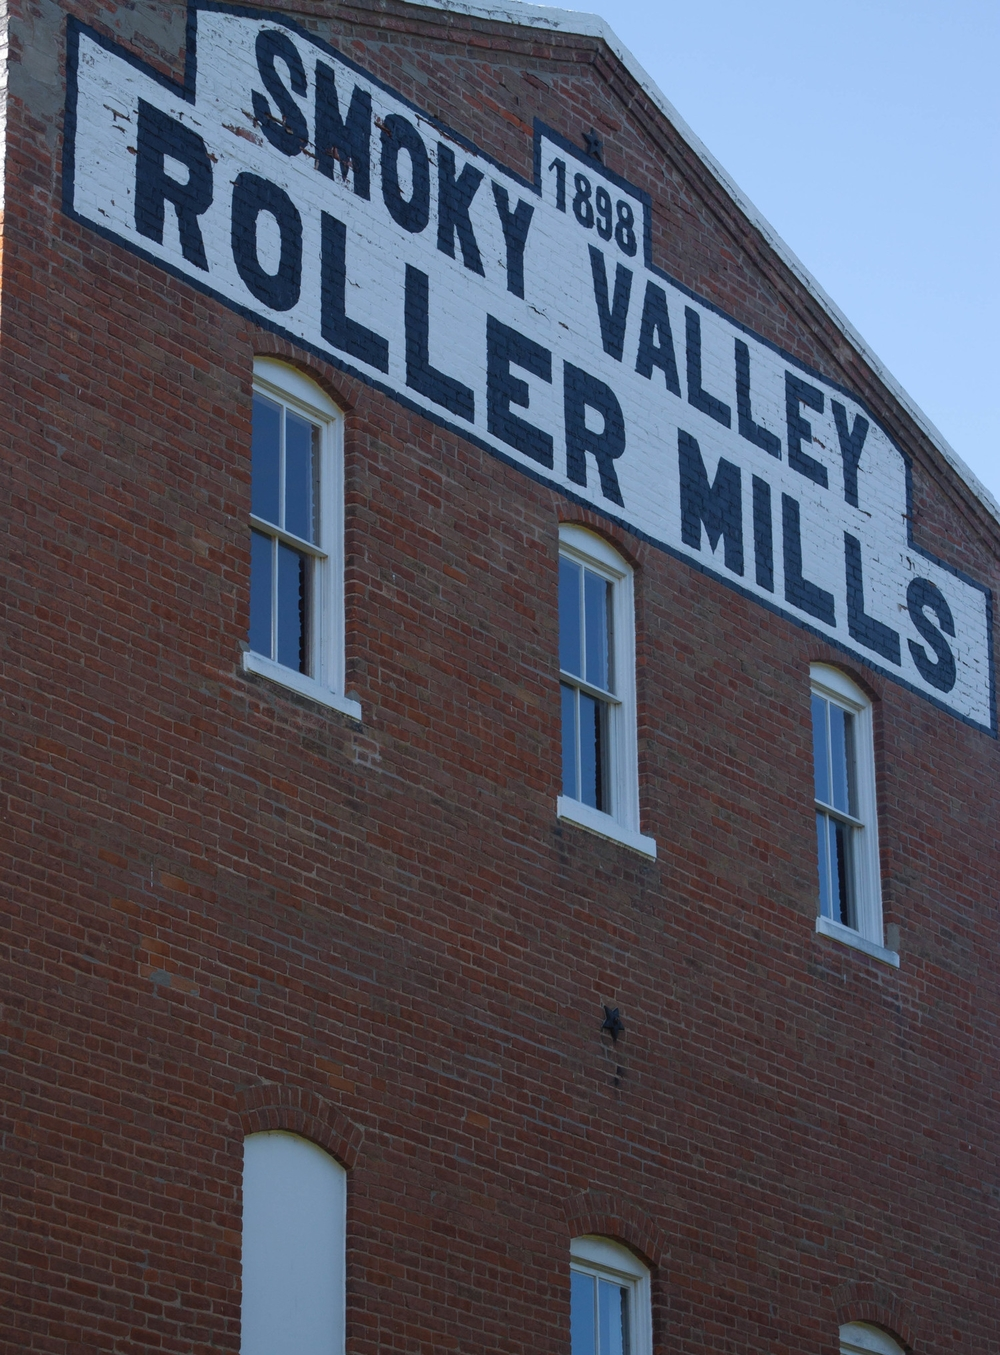 A must that every should see is the Smoky Valley Roller Mill near the river in Lindsborg.